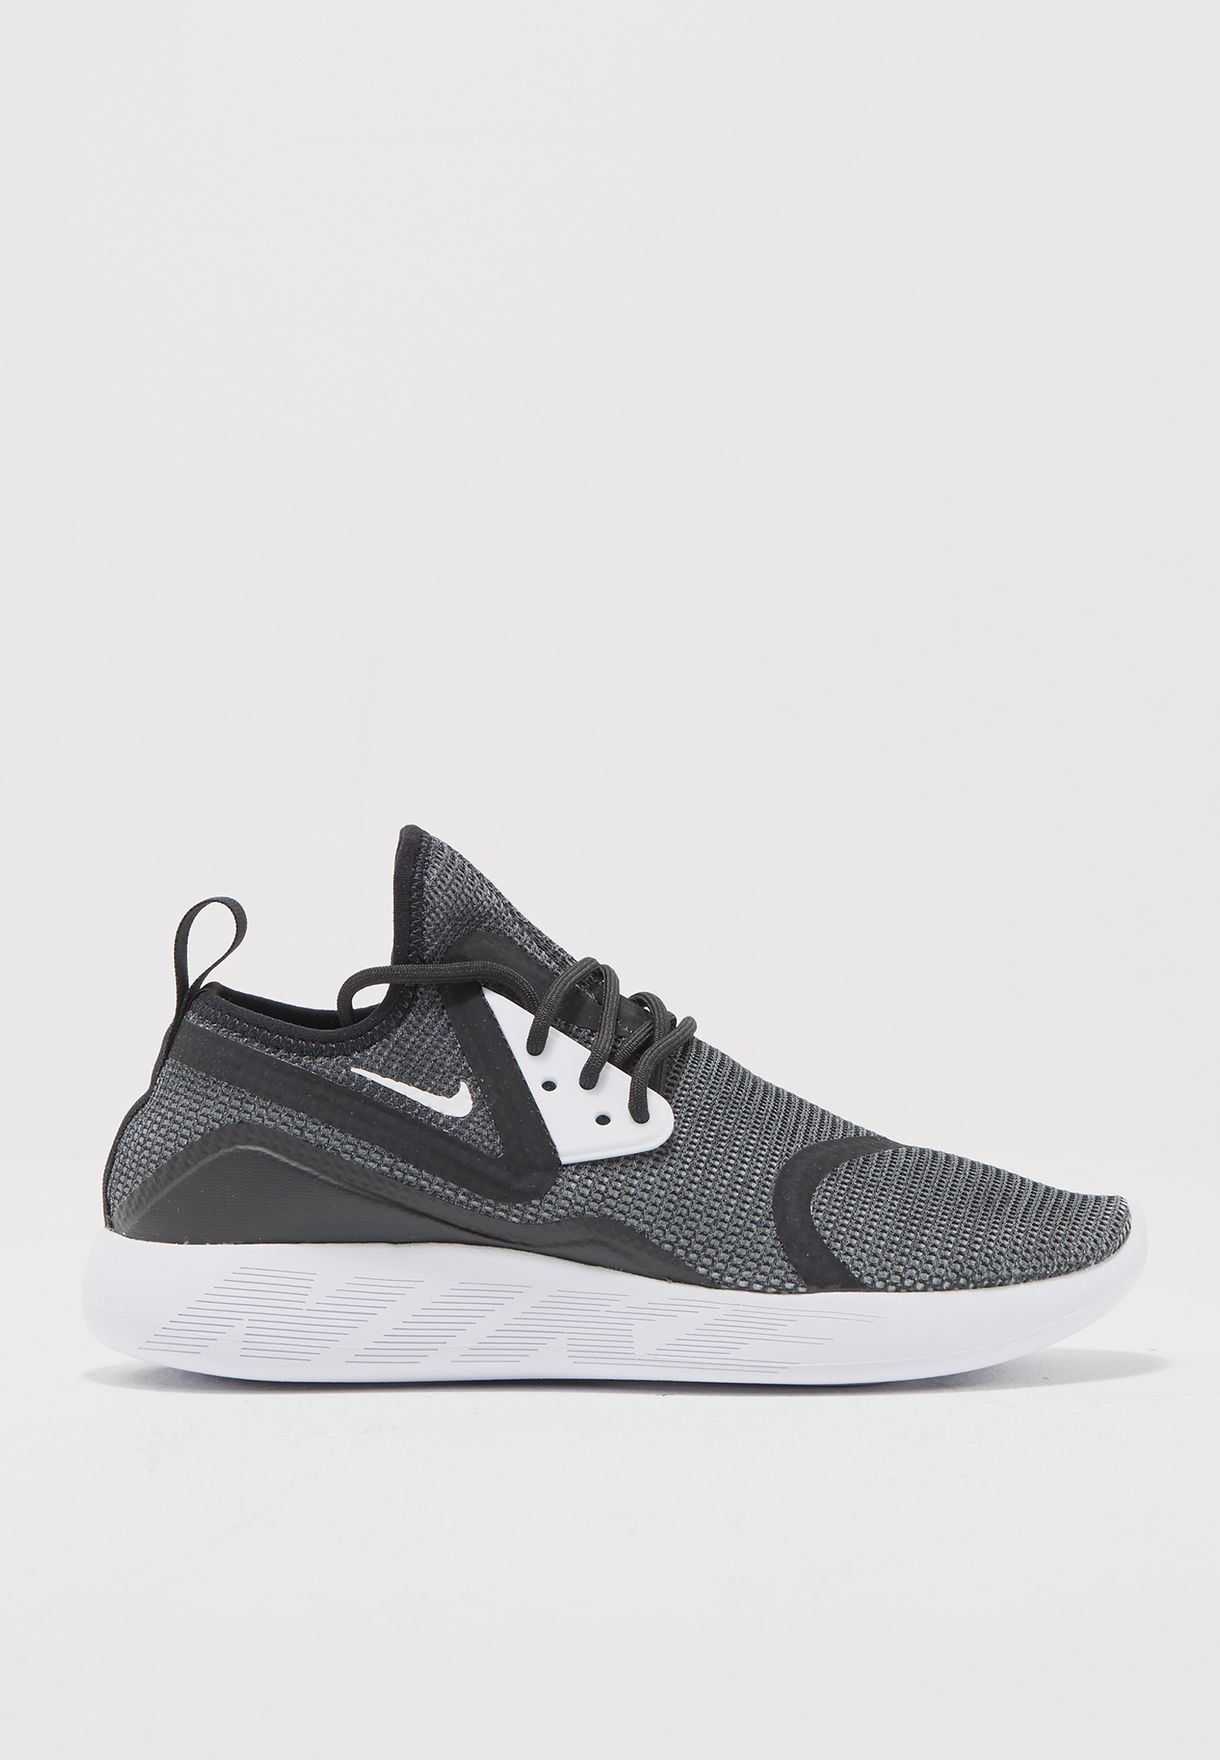 finest selection 234e6 e5178 Shop Nike black Lunarcharge BR 942060-001 for Women in UAE ...